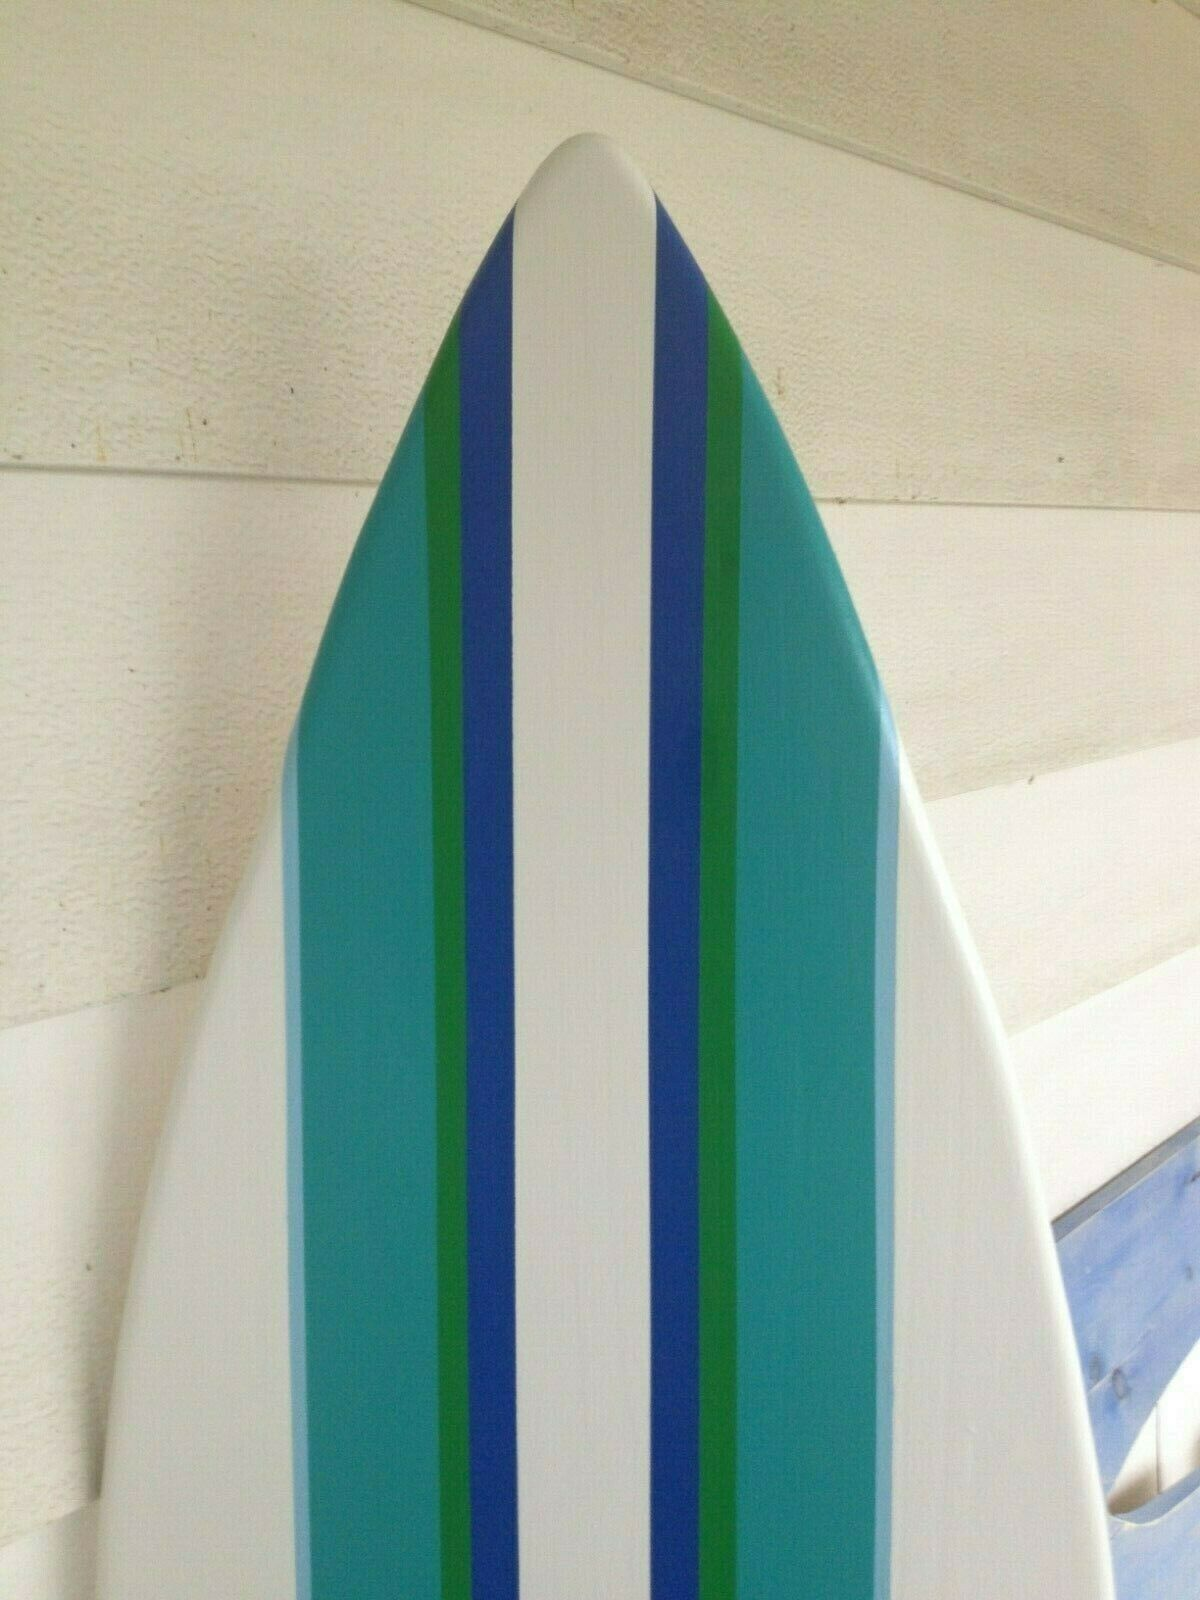 6 Foot Wood Surfboard wall art handpainted with multi stripes